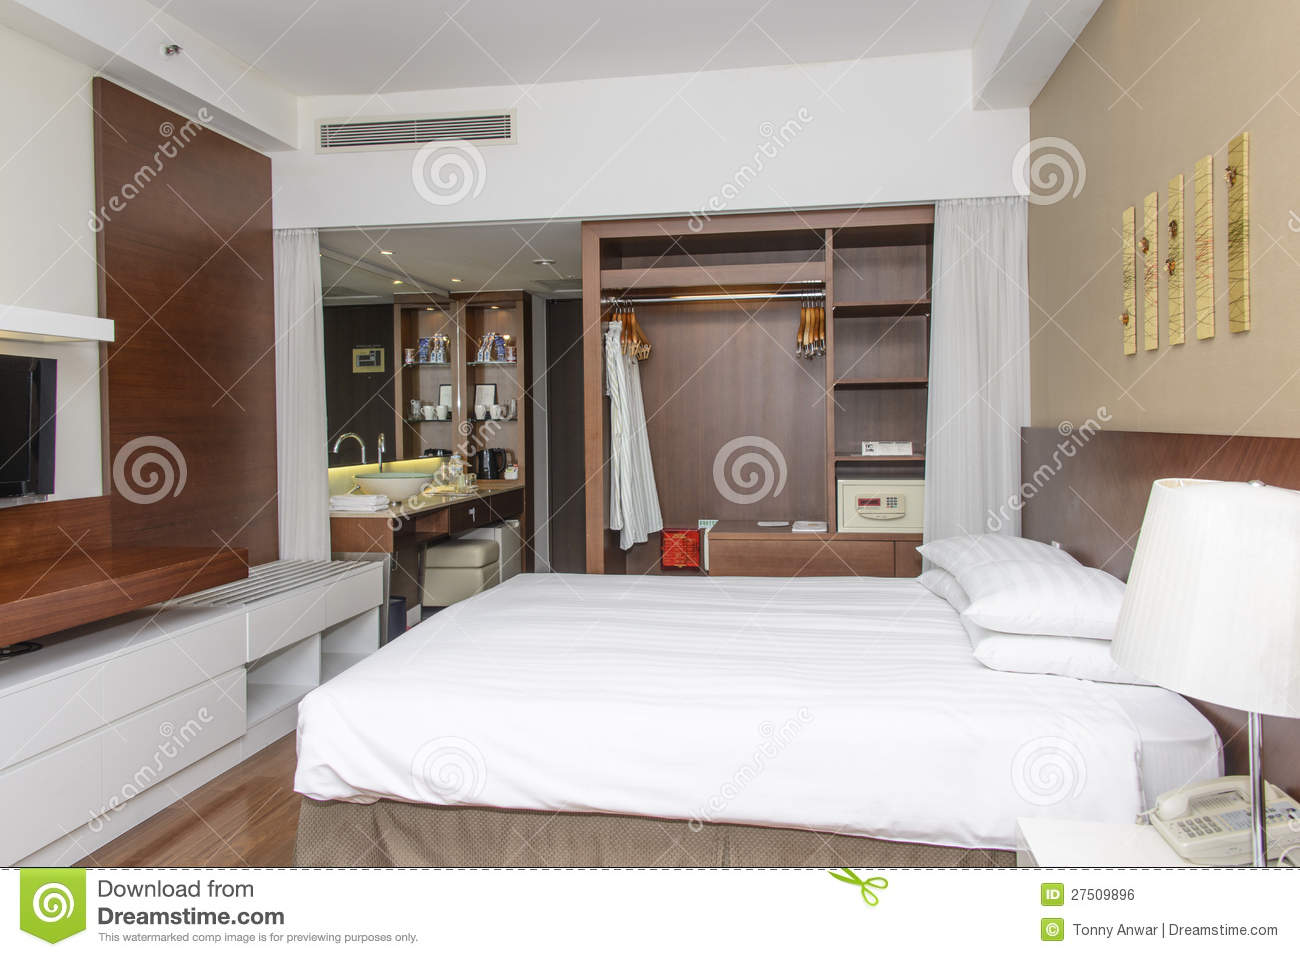 Modern hotel room interior stock photo image 18197840 - Luxurious Modern Hotel Room Royalty Free Stock Image